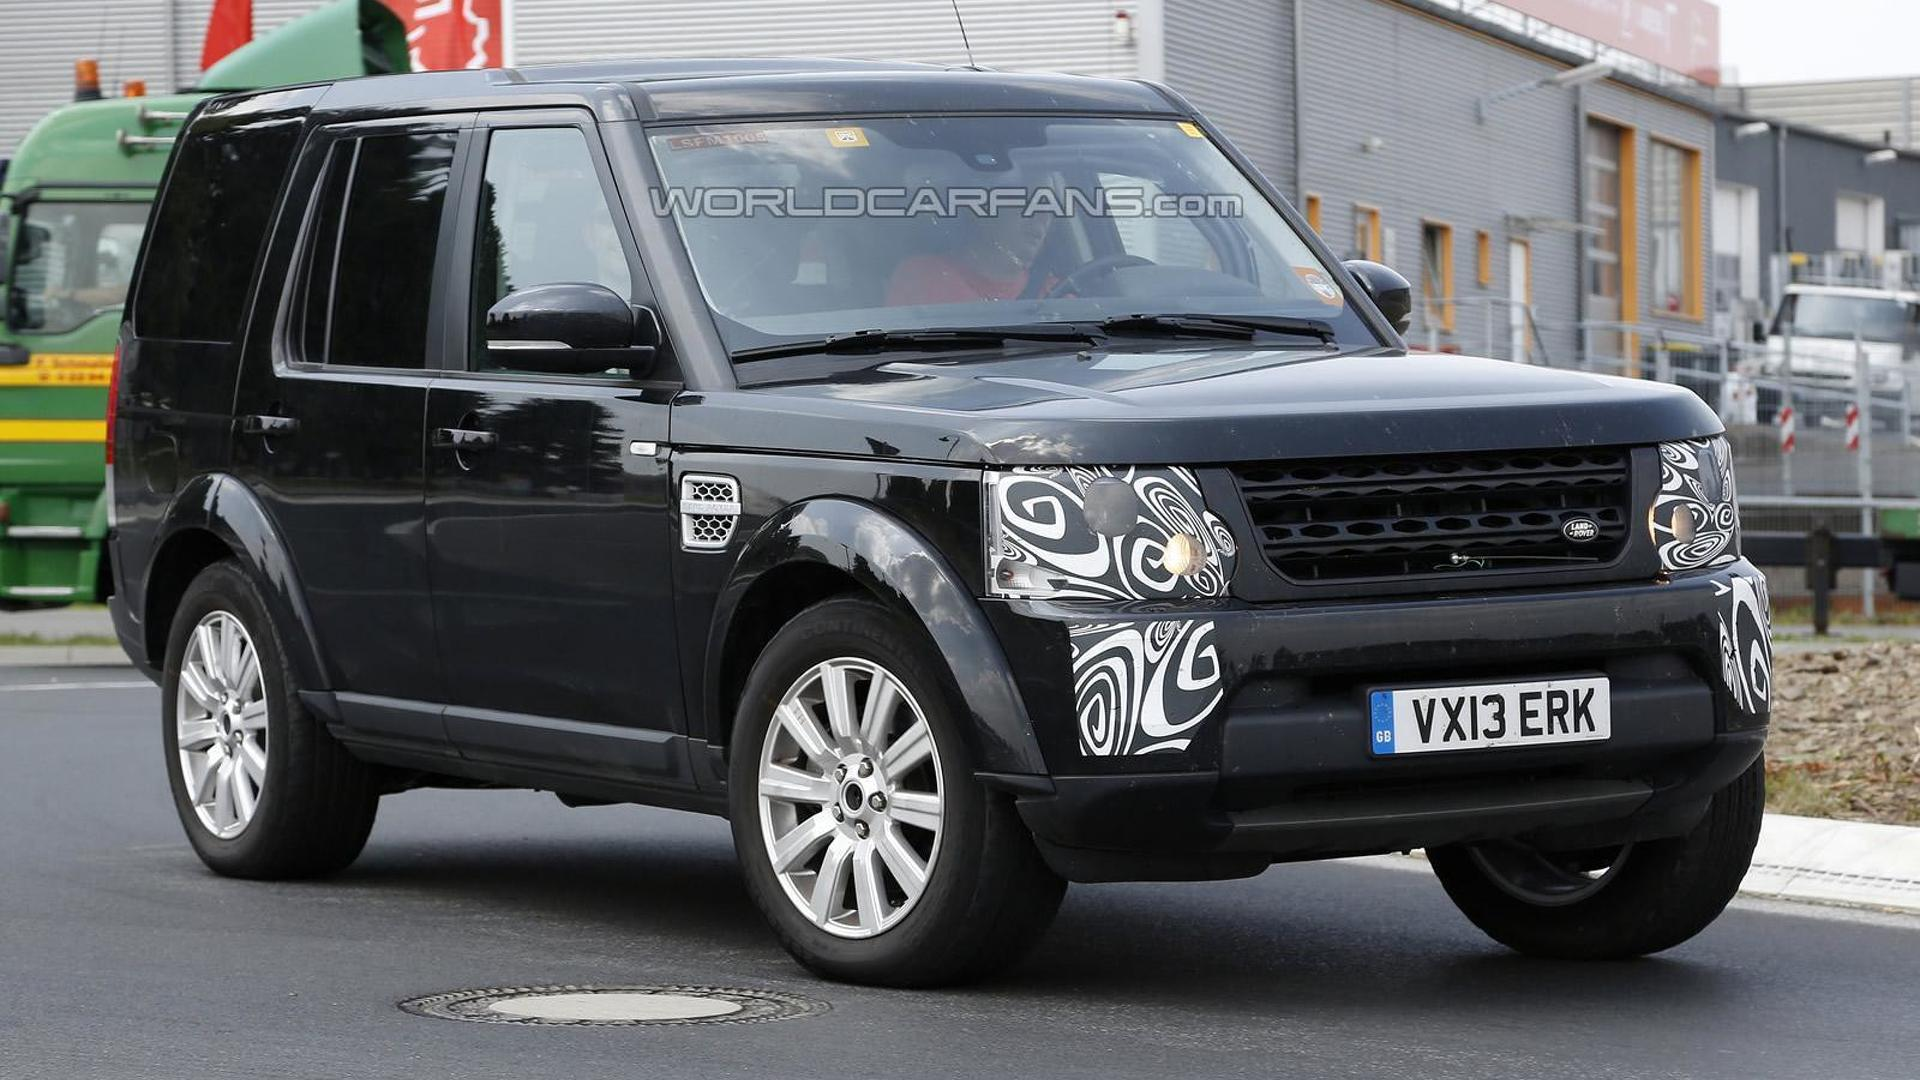 2014 Land Rover Discovery facelift spied once again